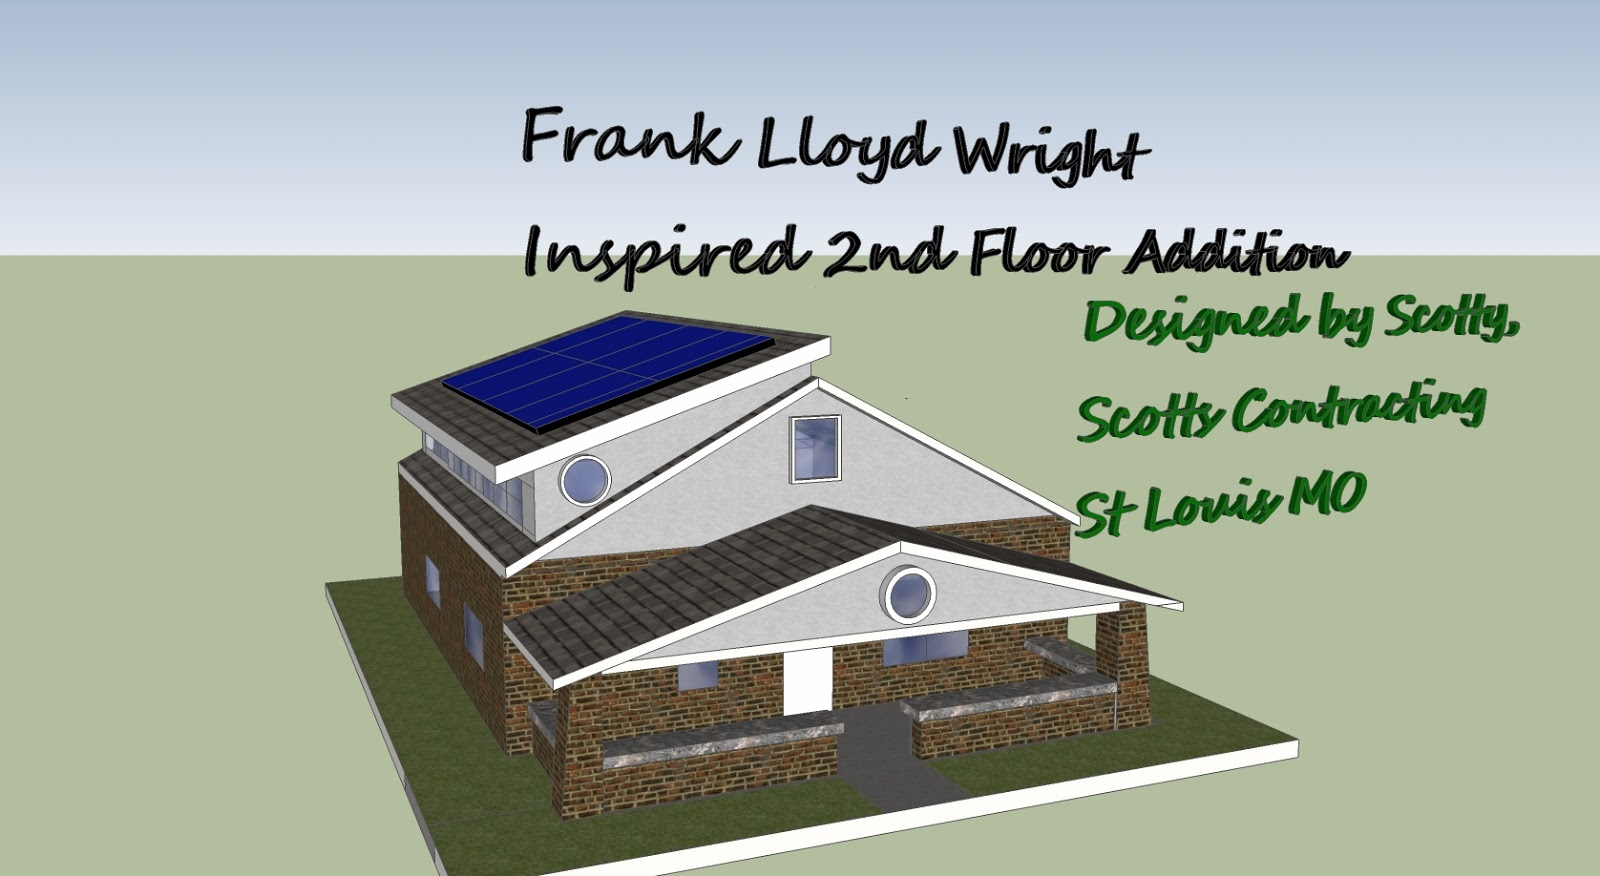 Design by Scotty-Scotts Contracting-Frank Lloyd Wright Inspired 2nd Floor Room Addition